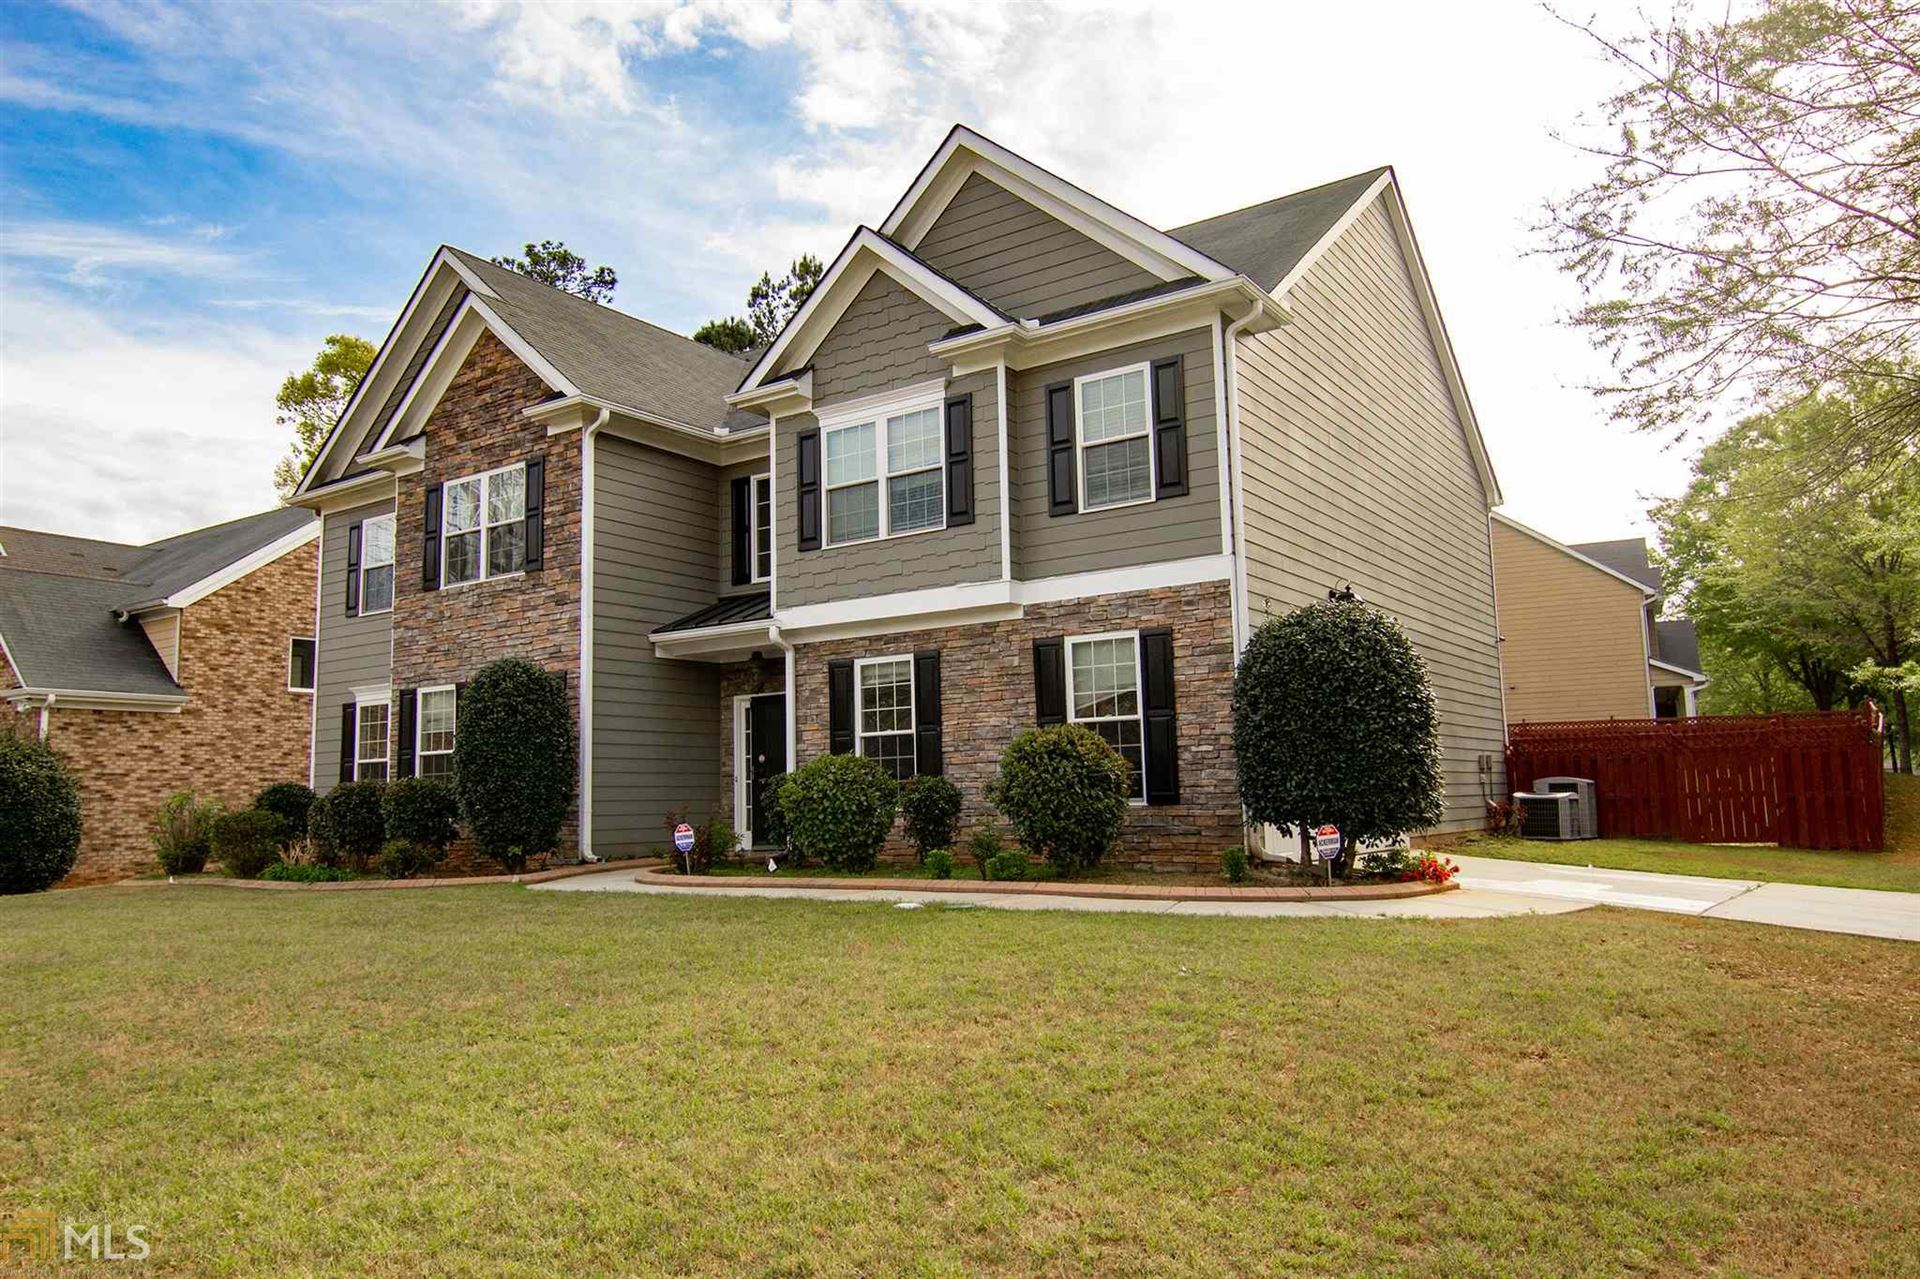 7858 The Lakes Dr, Fairburn, GA 30213 - #: 8769520